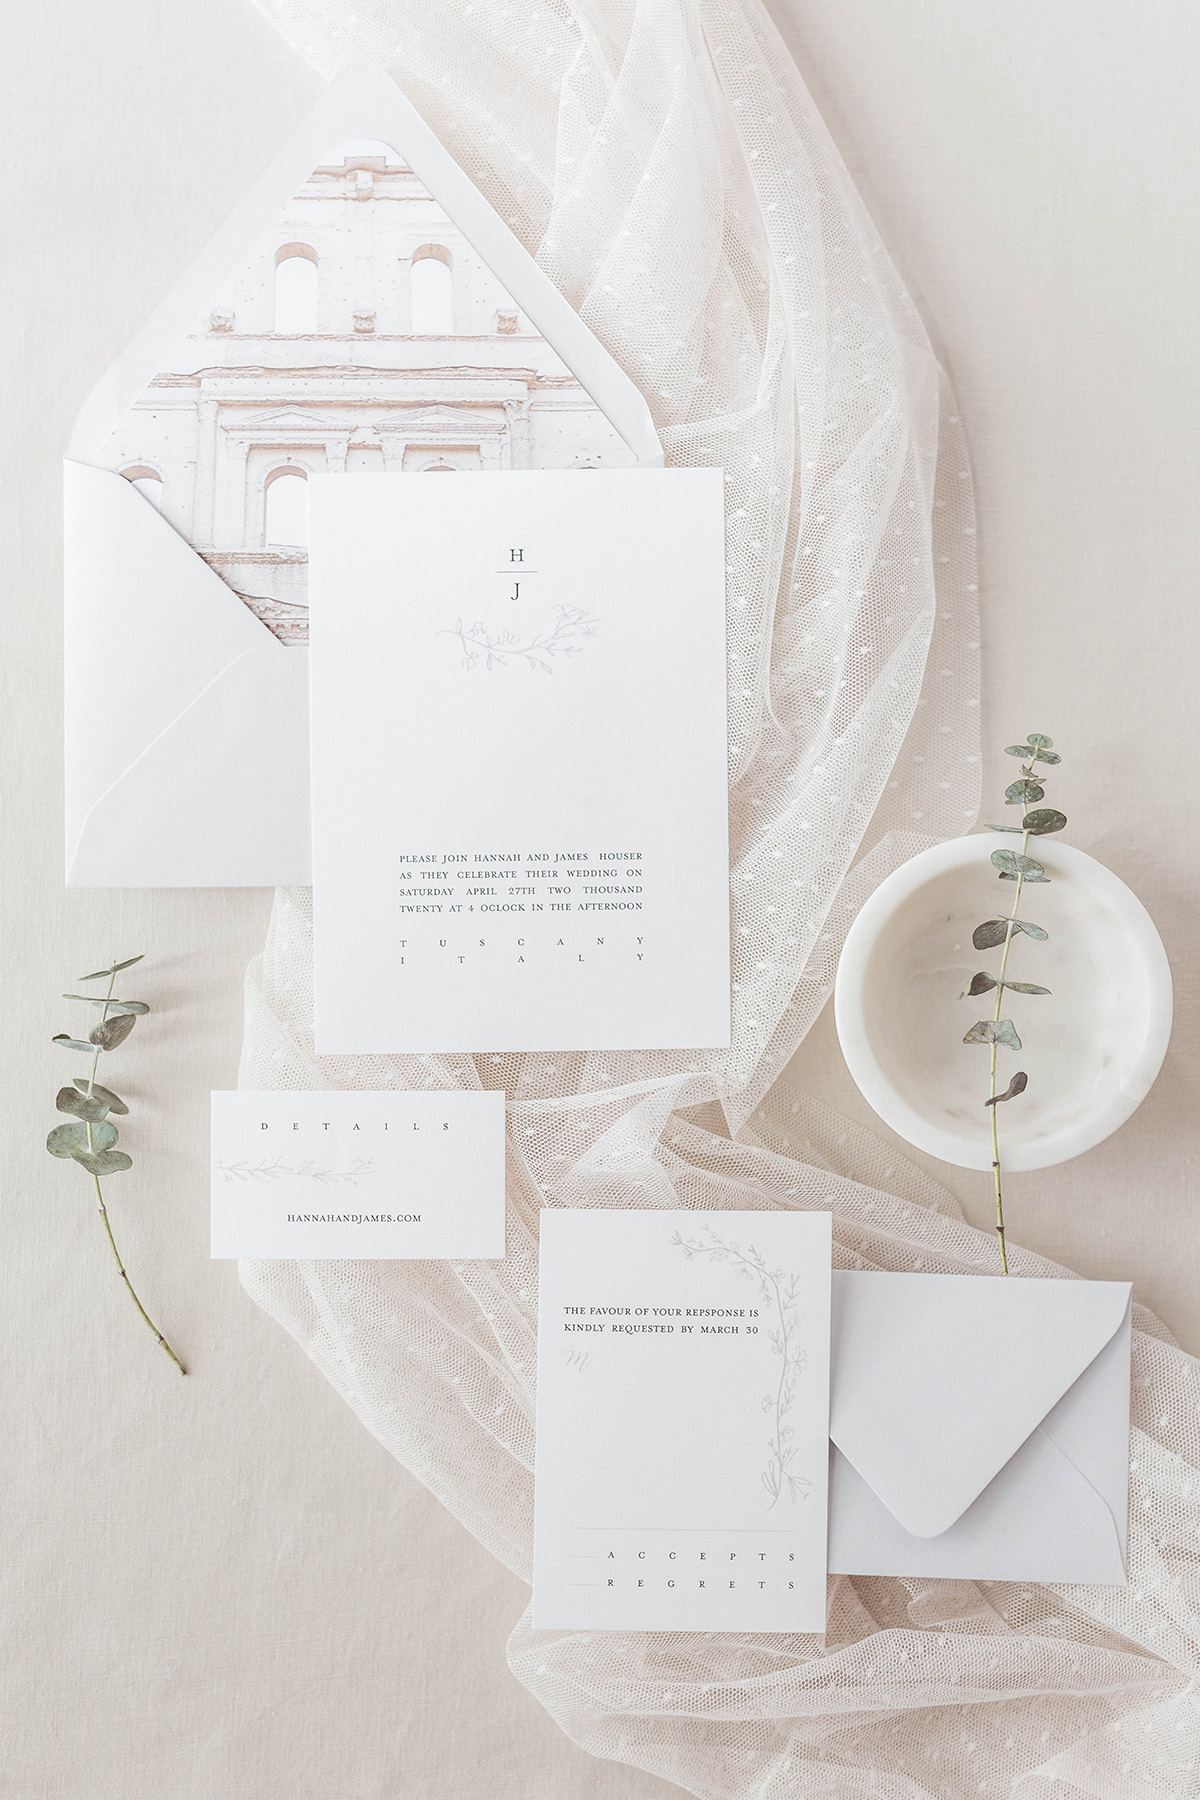 italy-wedding-invitation.jpg